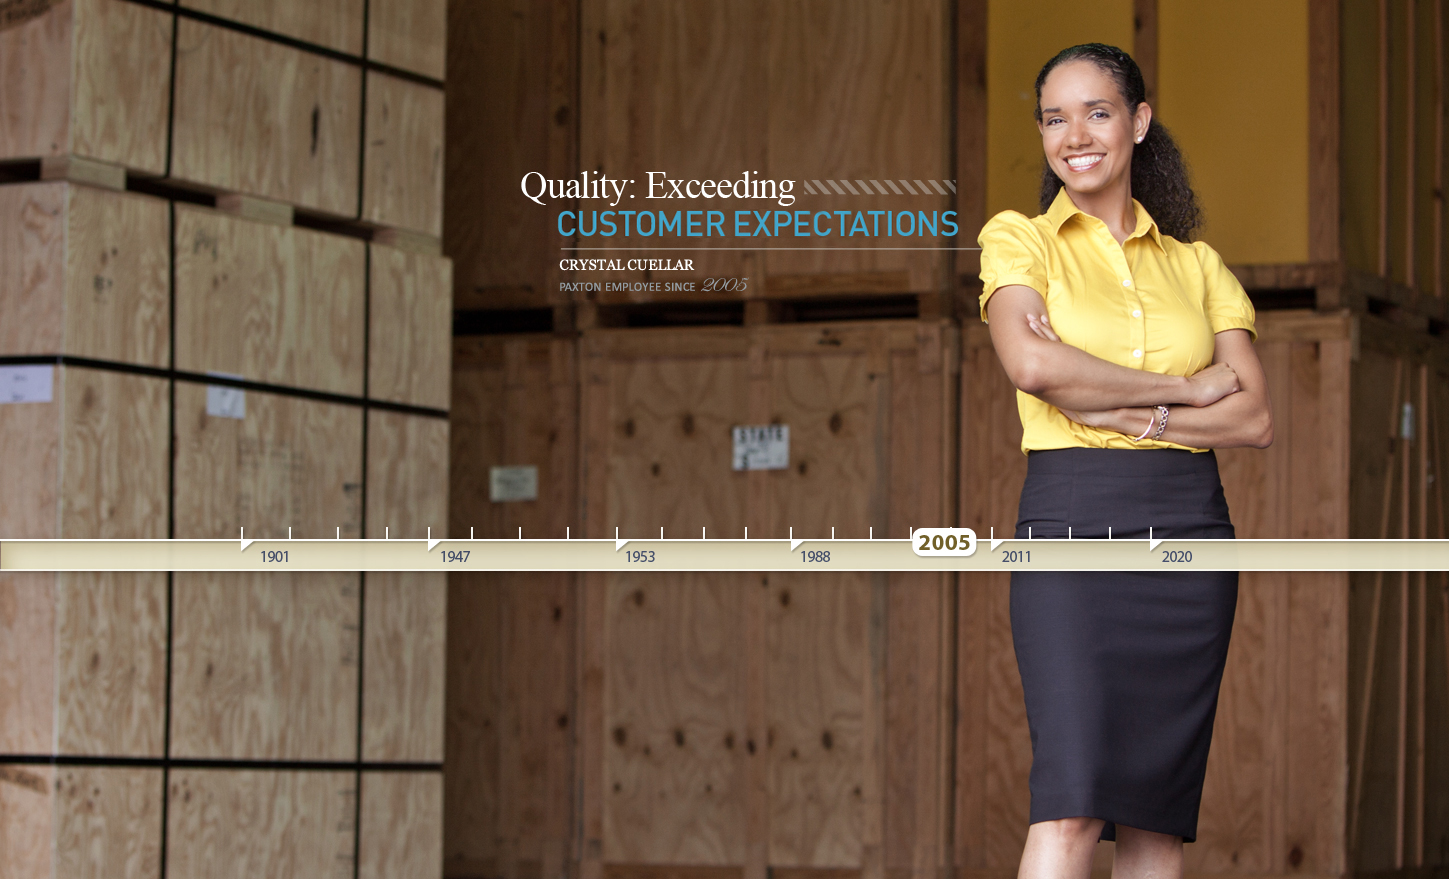 QUALITY: Exceeding customer expectations